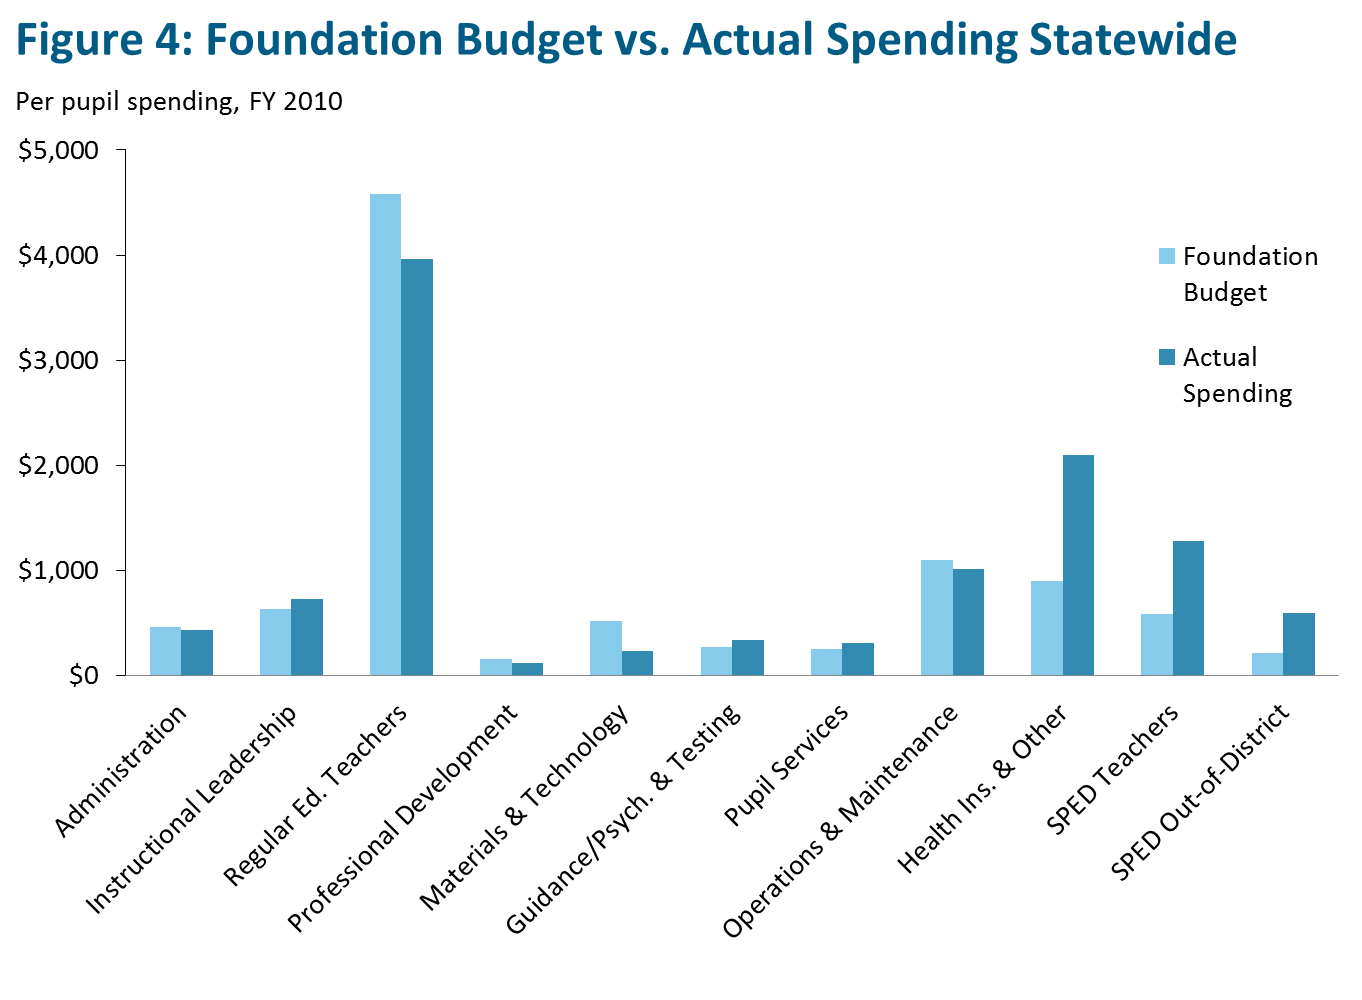 Foundation Budget vs. Actual Spending Statewide